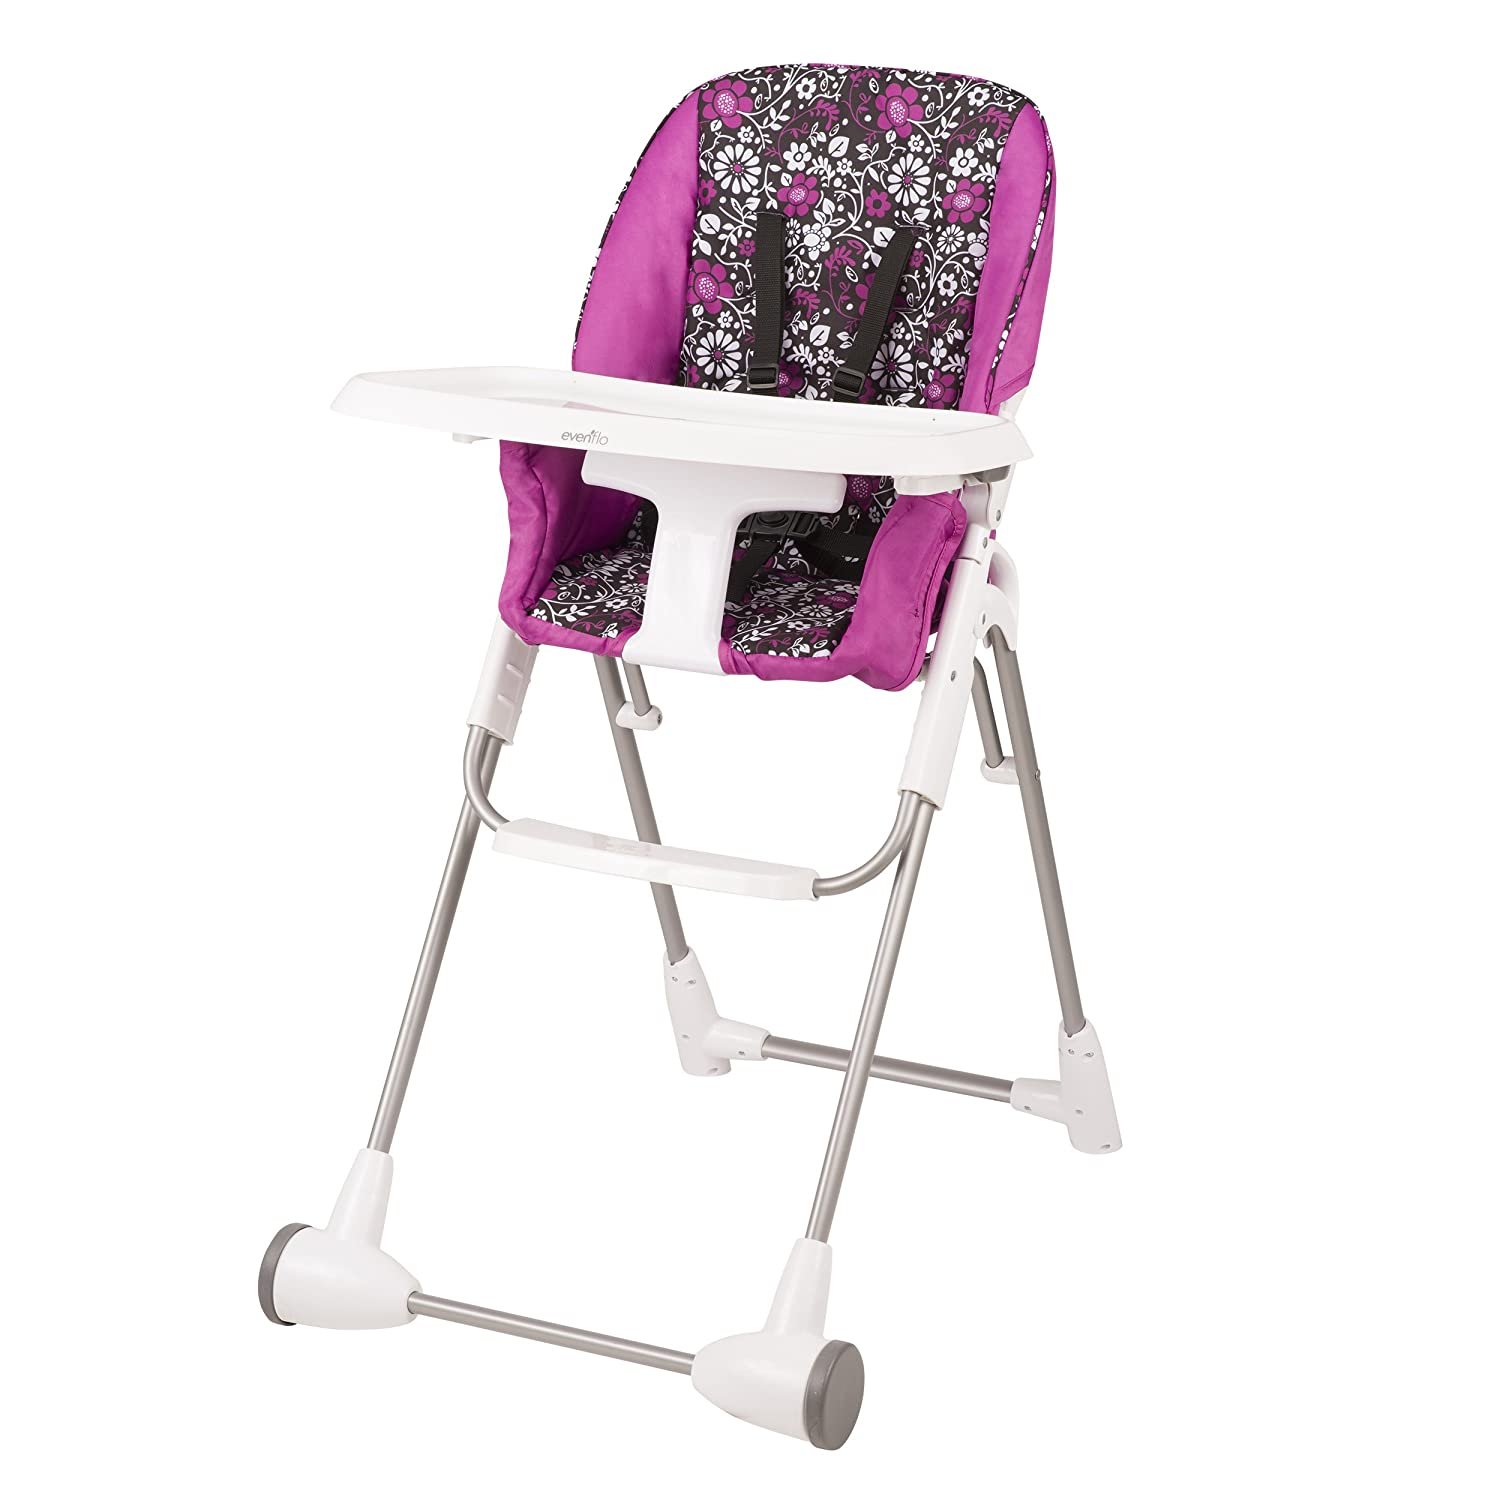 Pink, Black, White Evenflo Symmetry High Chair, Daphne